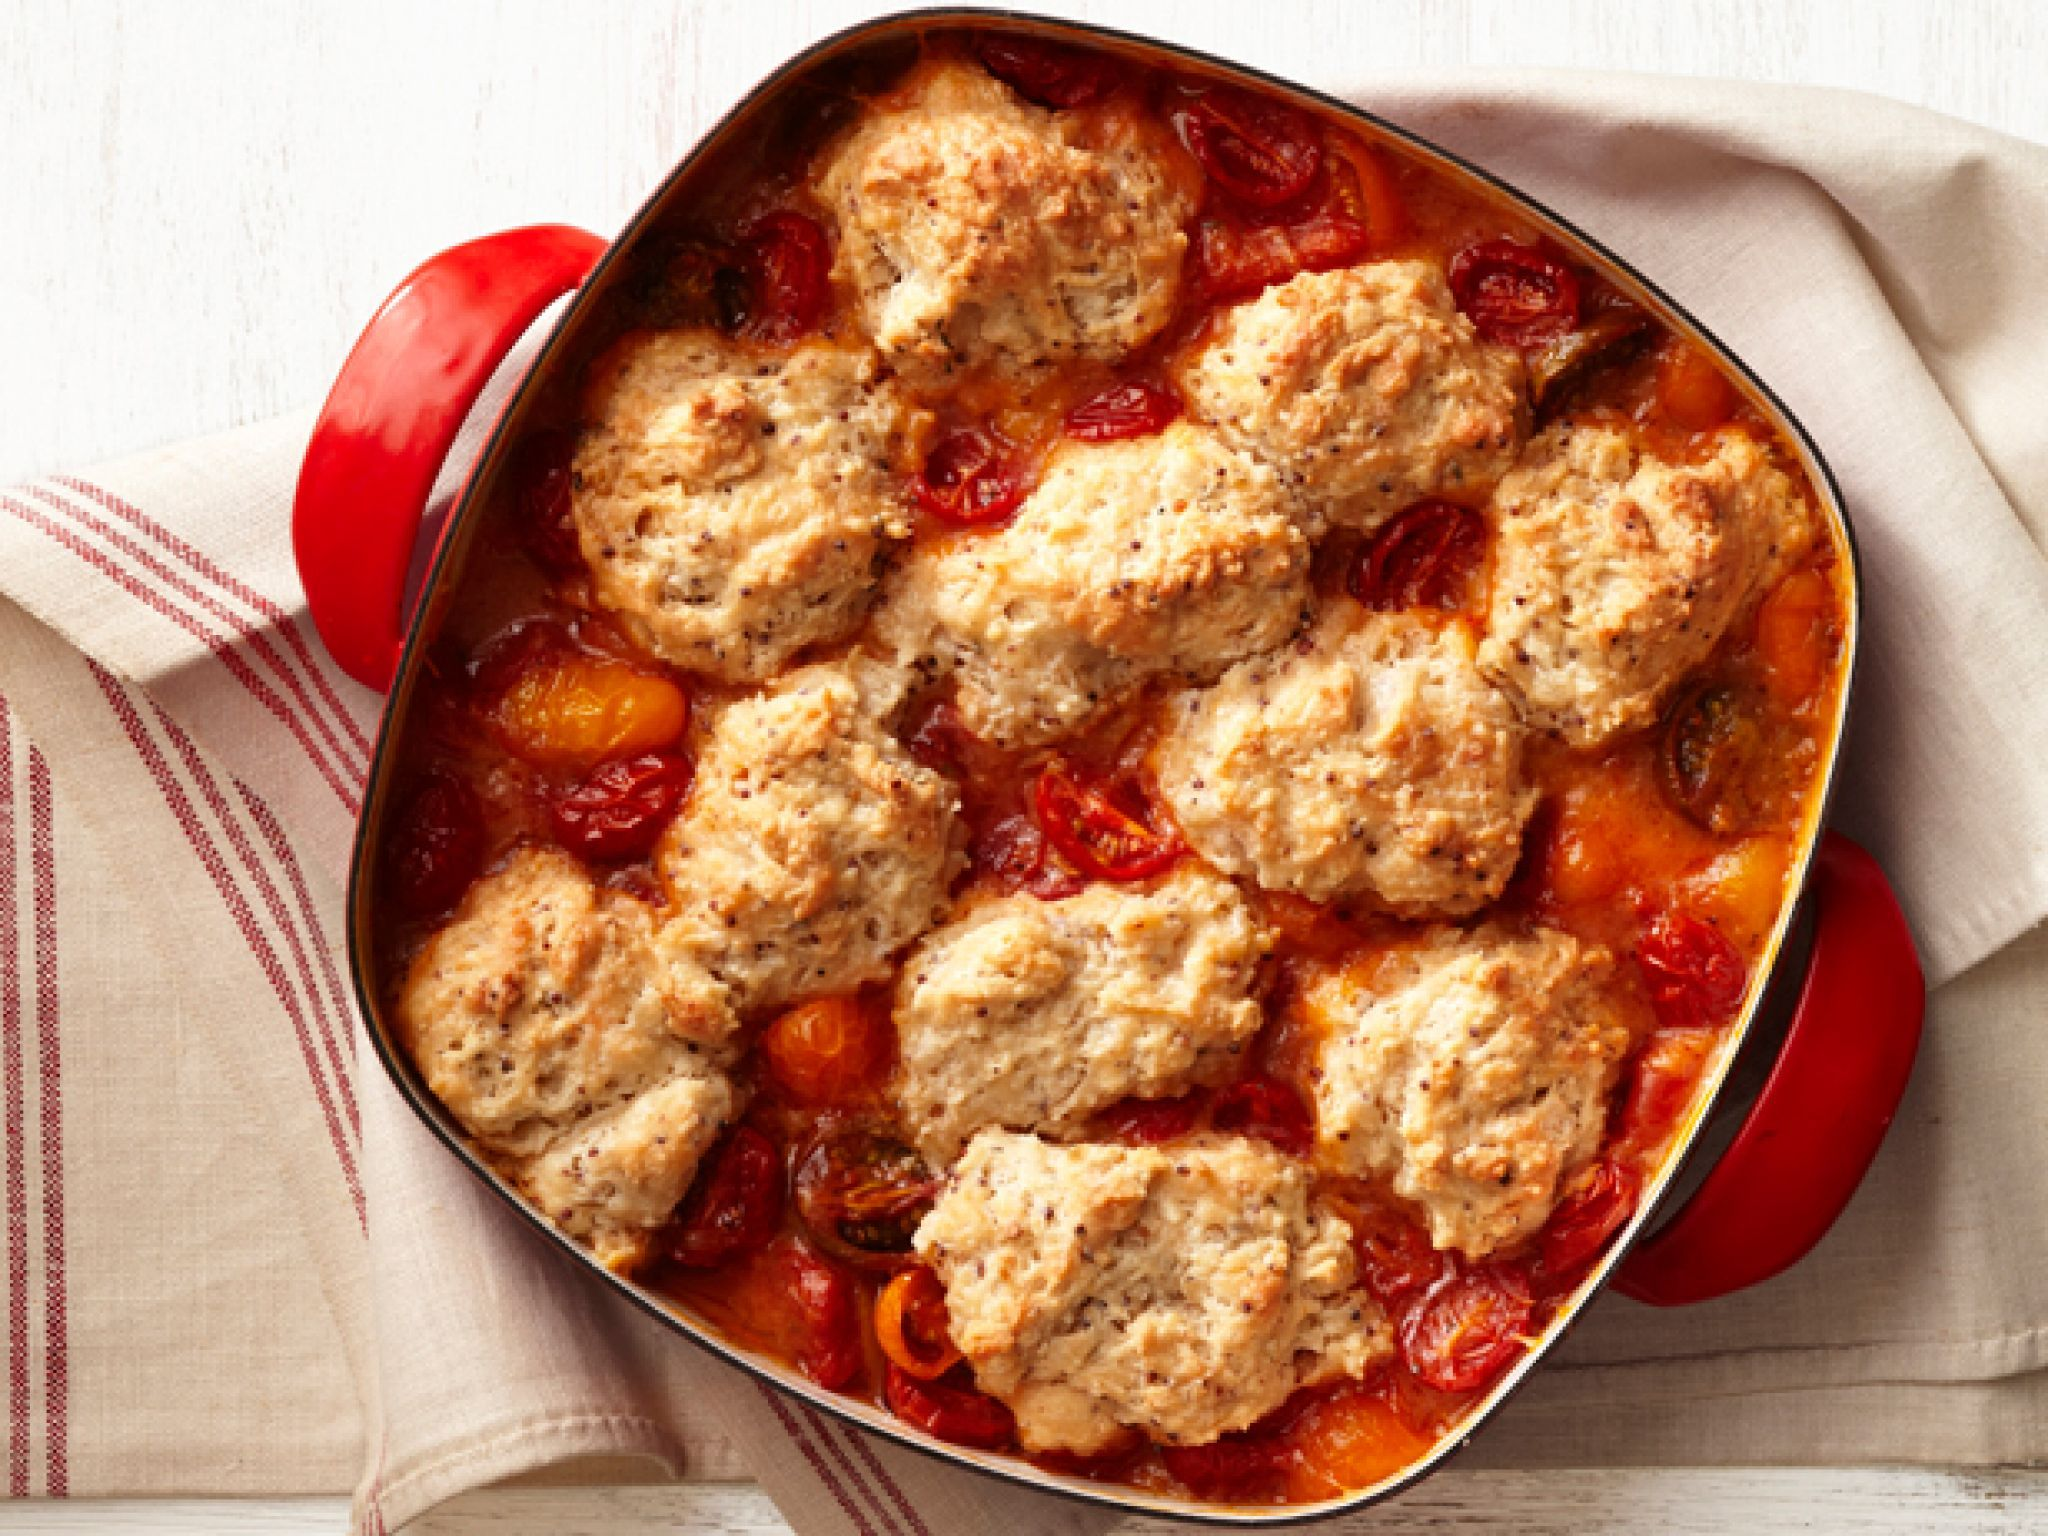 Have a look at tomato cobbler its so easy to make cobbler recipe box tomato cobbler recipe from food network forumfinder Choice Image